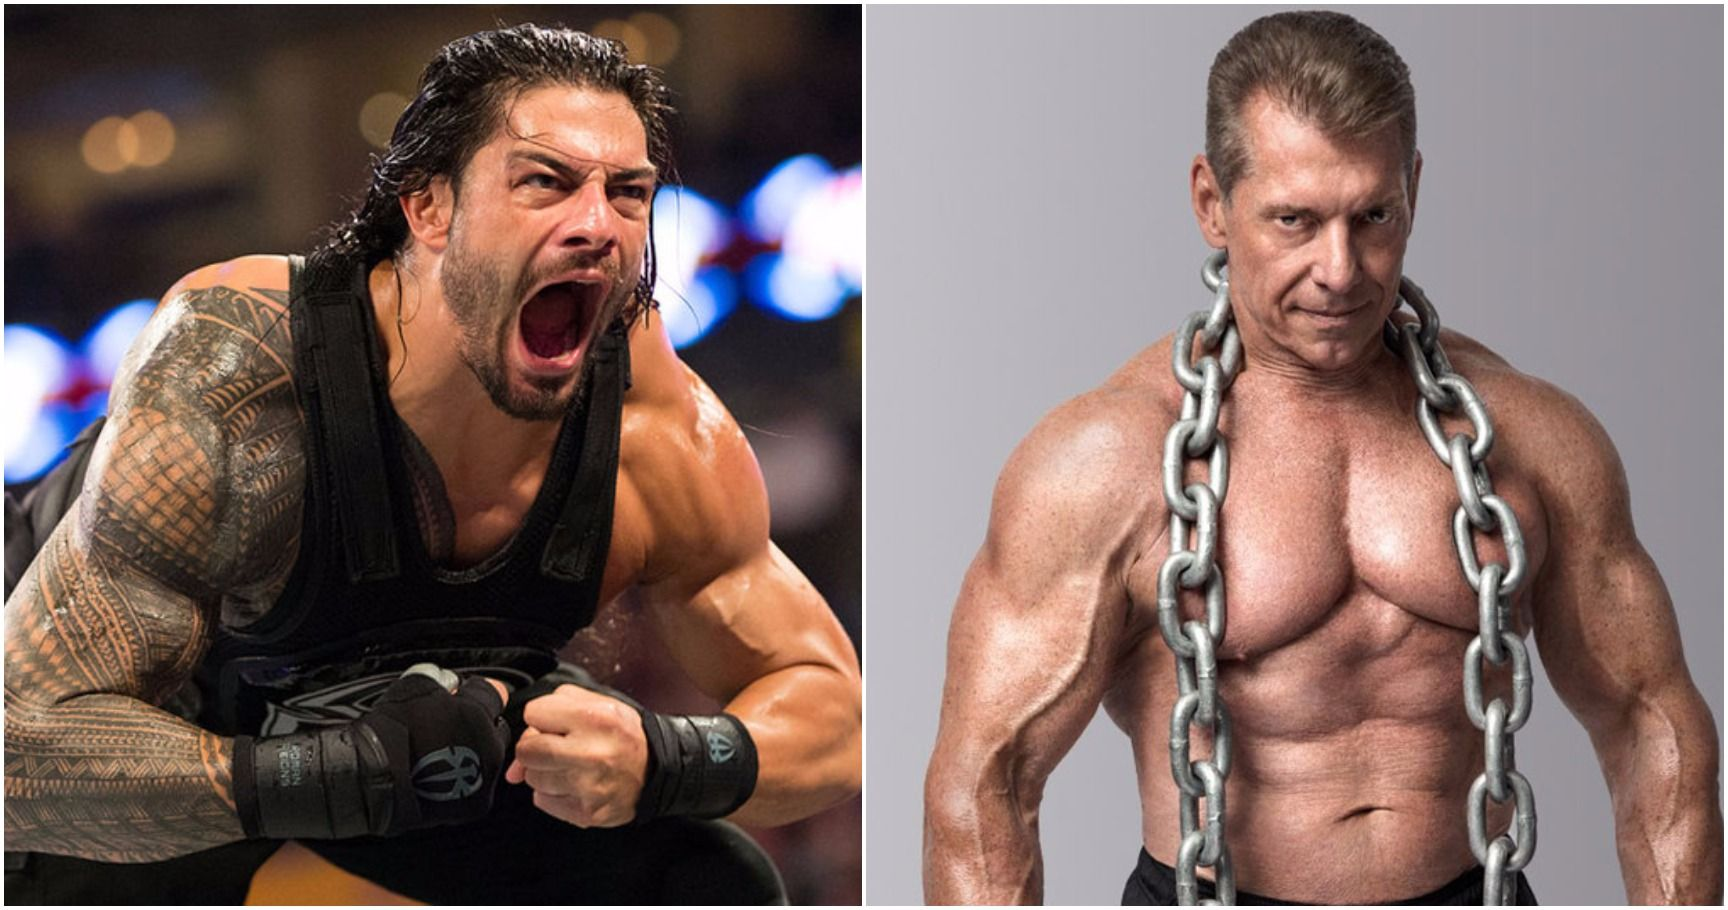 The 15 Most Controversial WWE Questions We Need Answers To